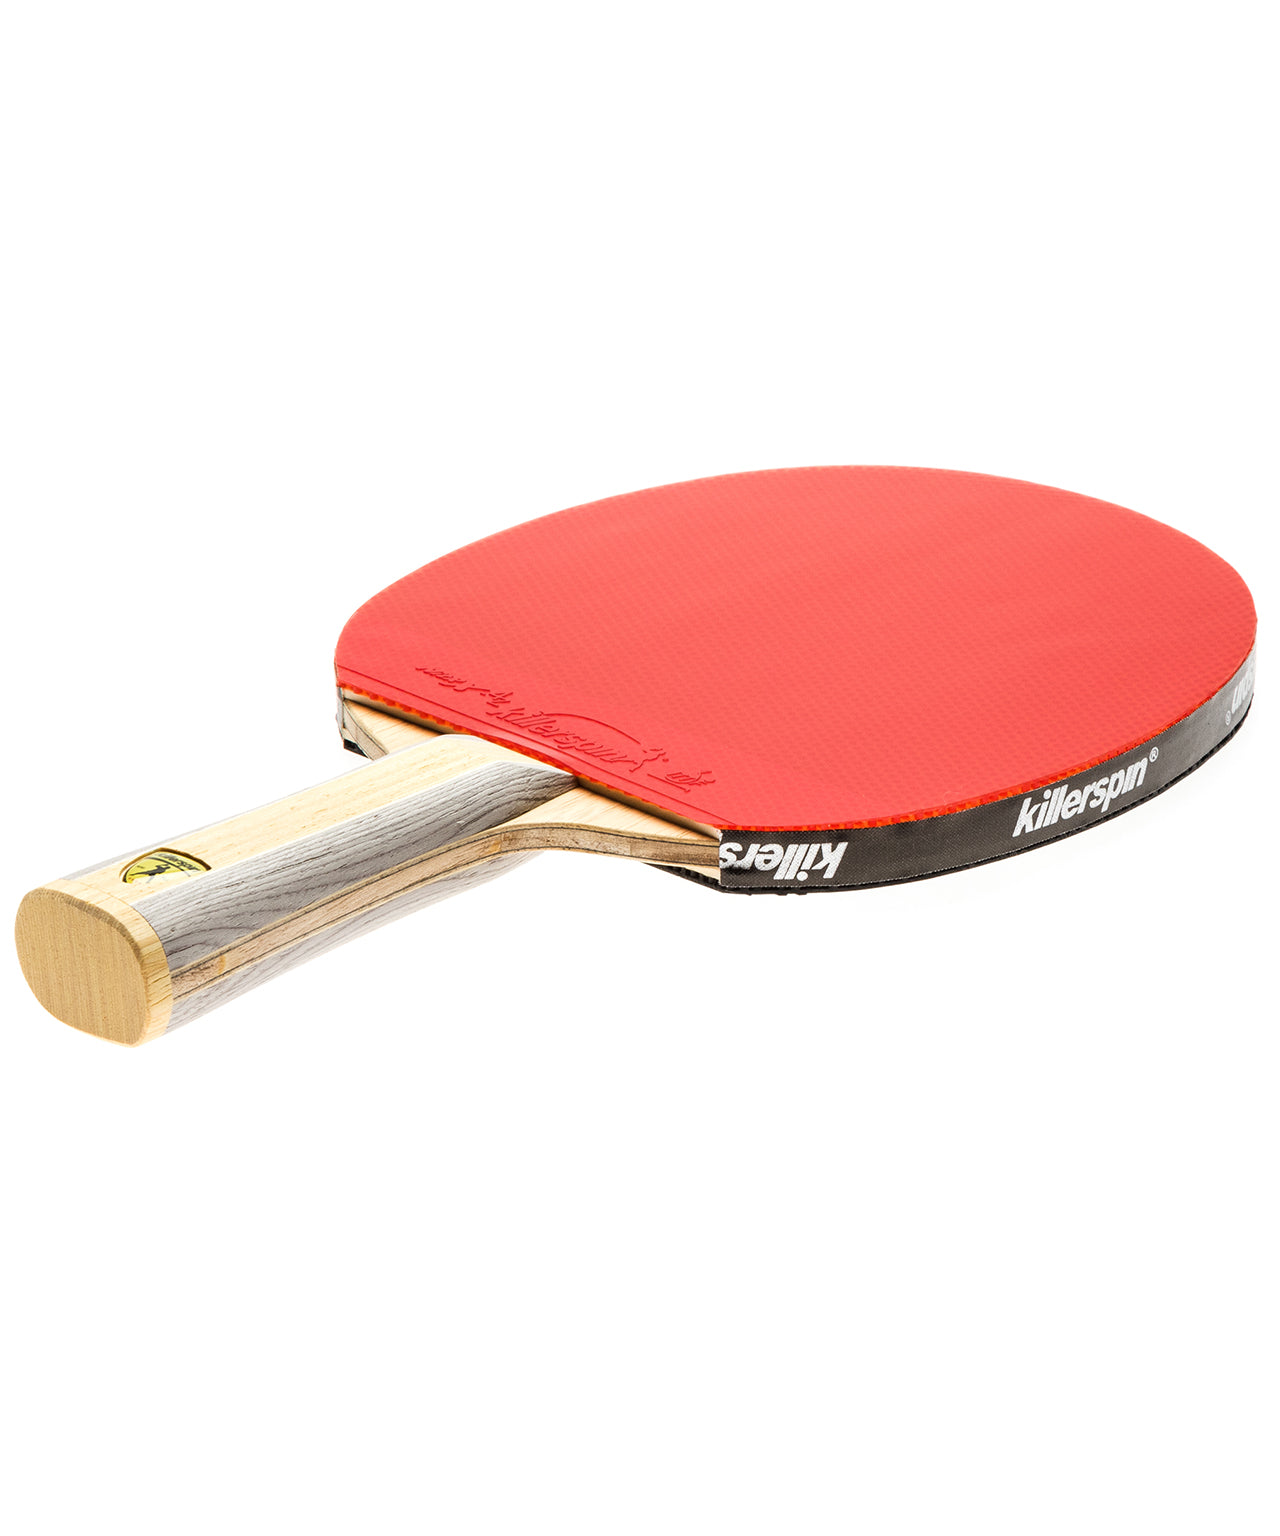 Killerspin Ping Pong Paddle Diamond CQ - Flared Red Rubber